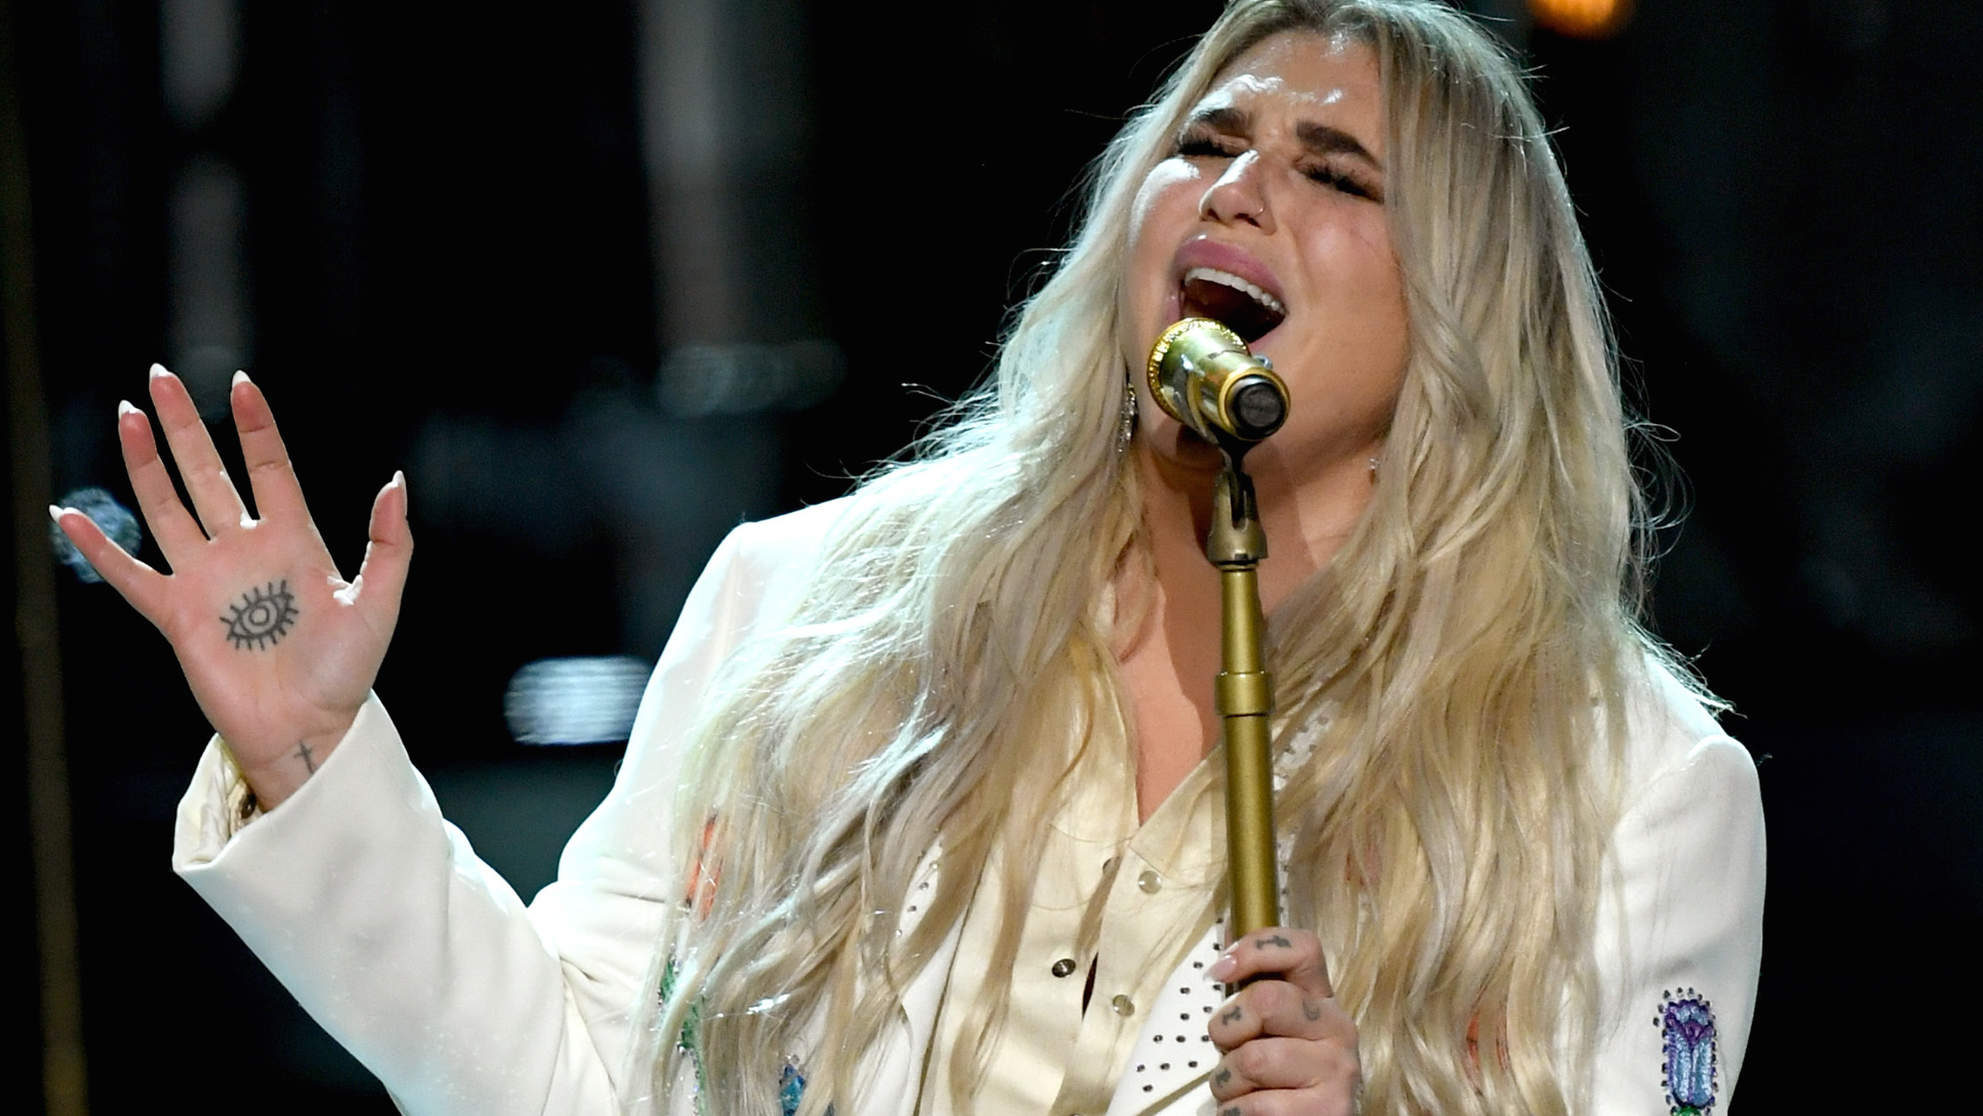 Kesha Performed  Praying  at the 2018 Grammys and It's One of the Most Powerful Moments in Award Show History